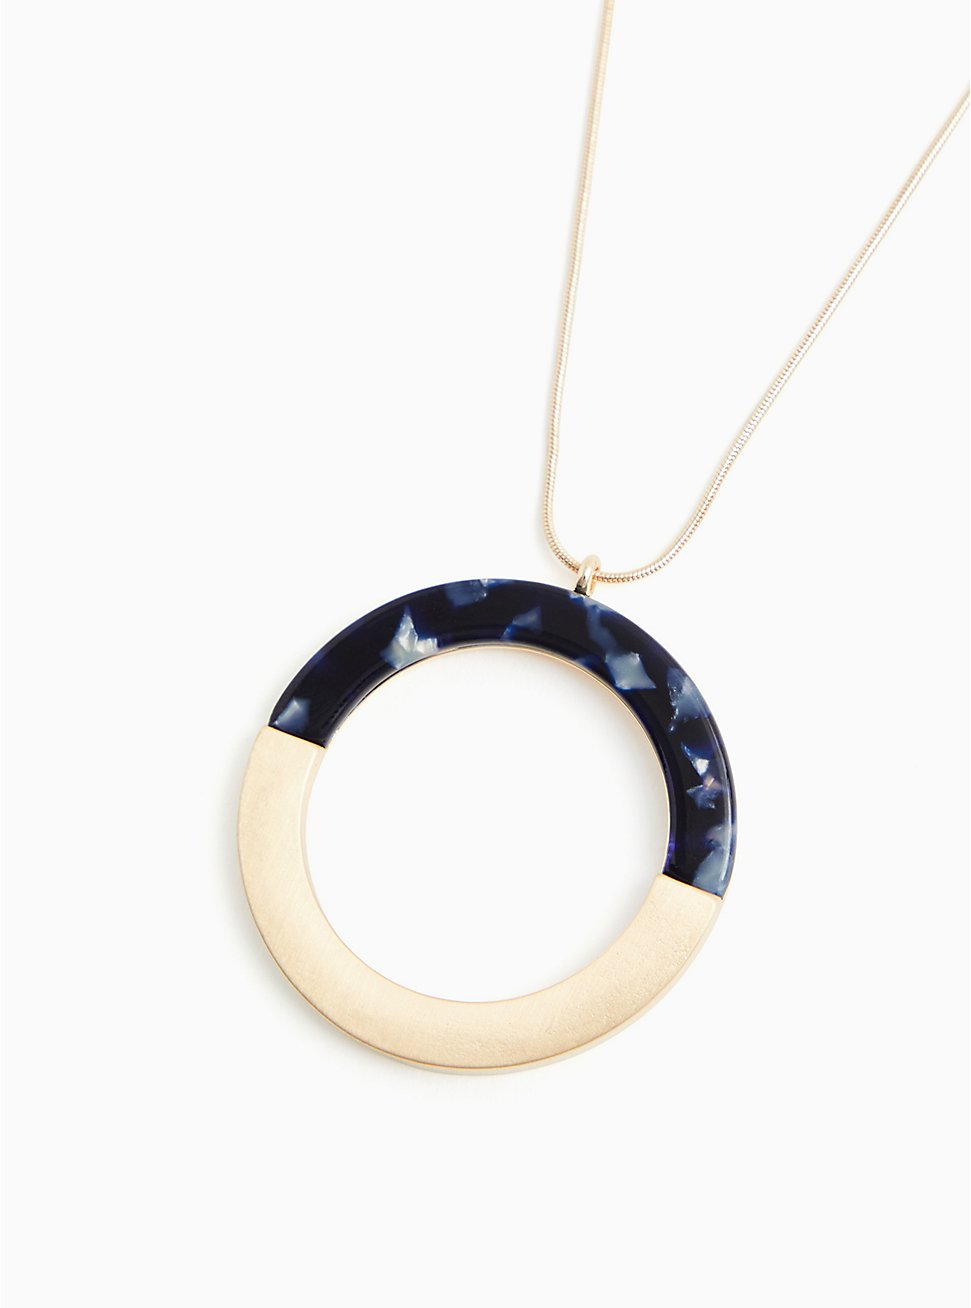 Ivory & Navy Resin Circle Pendant Necklace, , hi-res